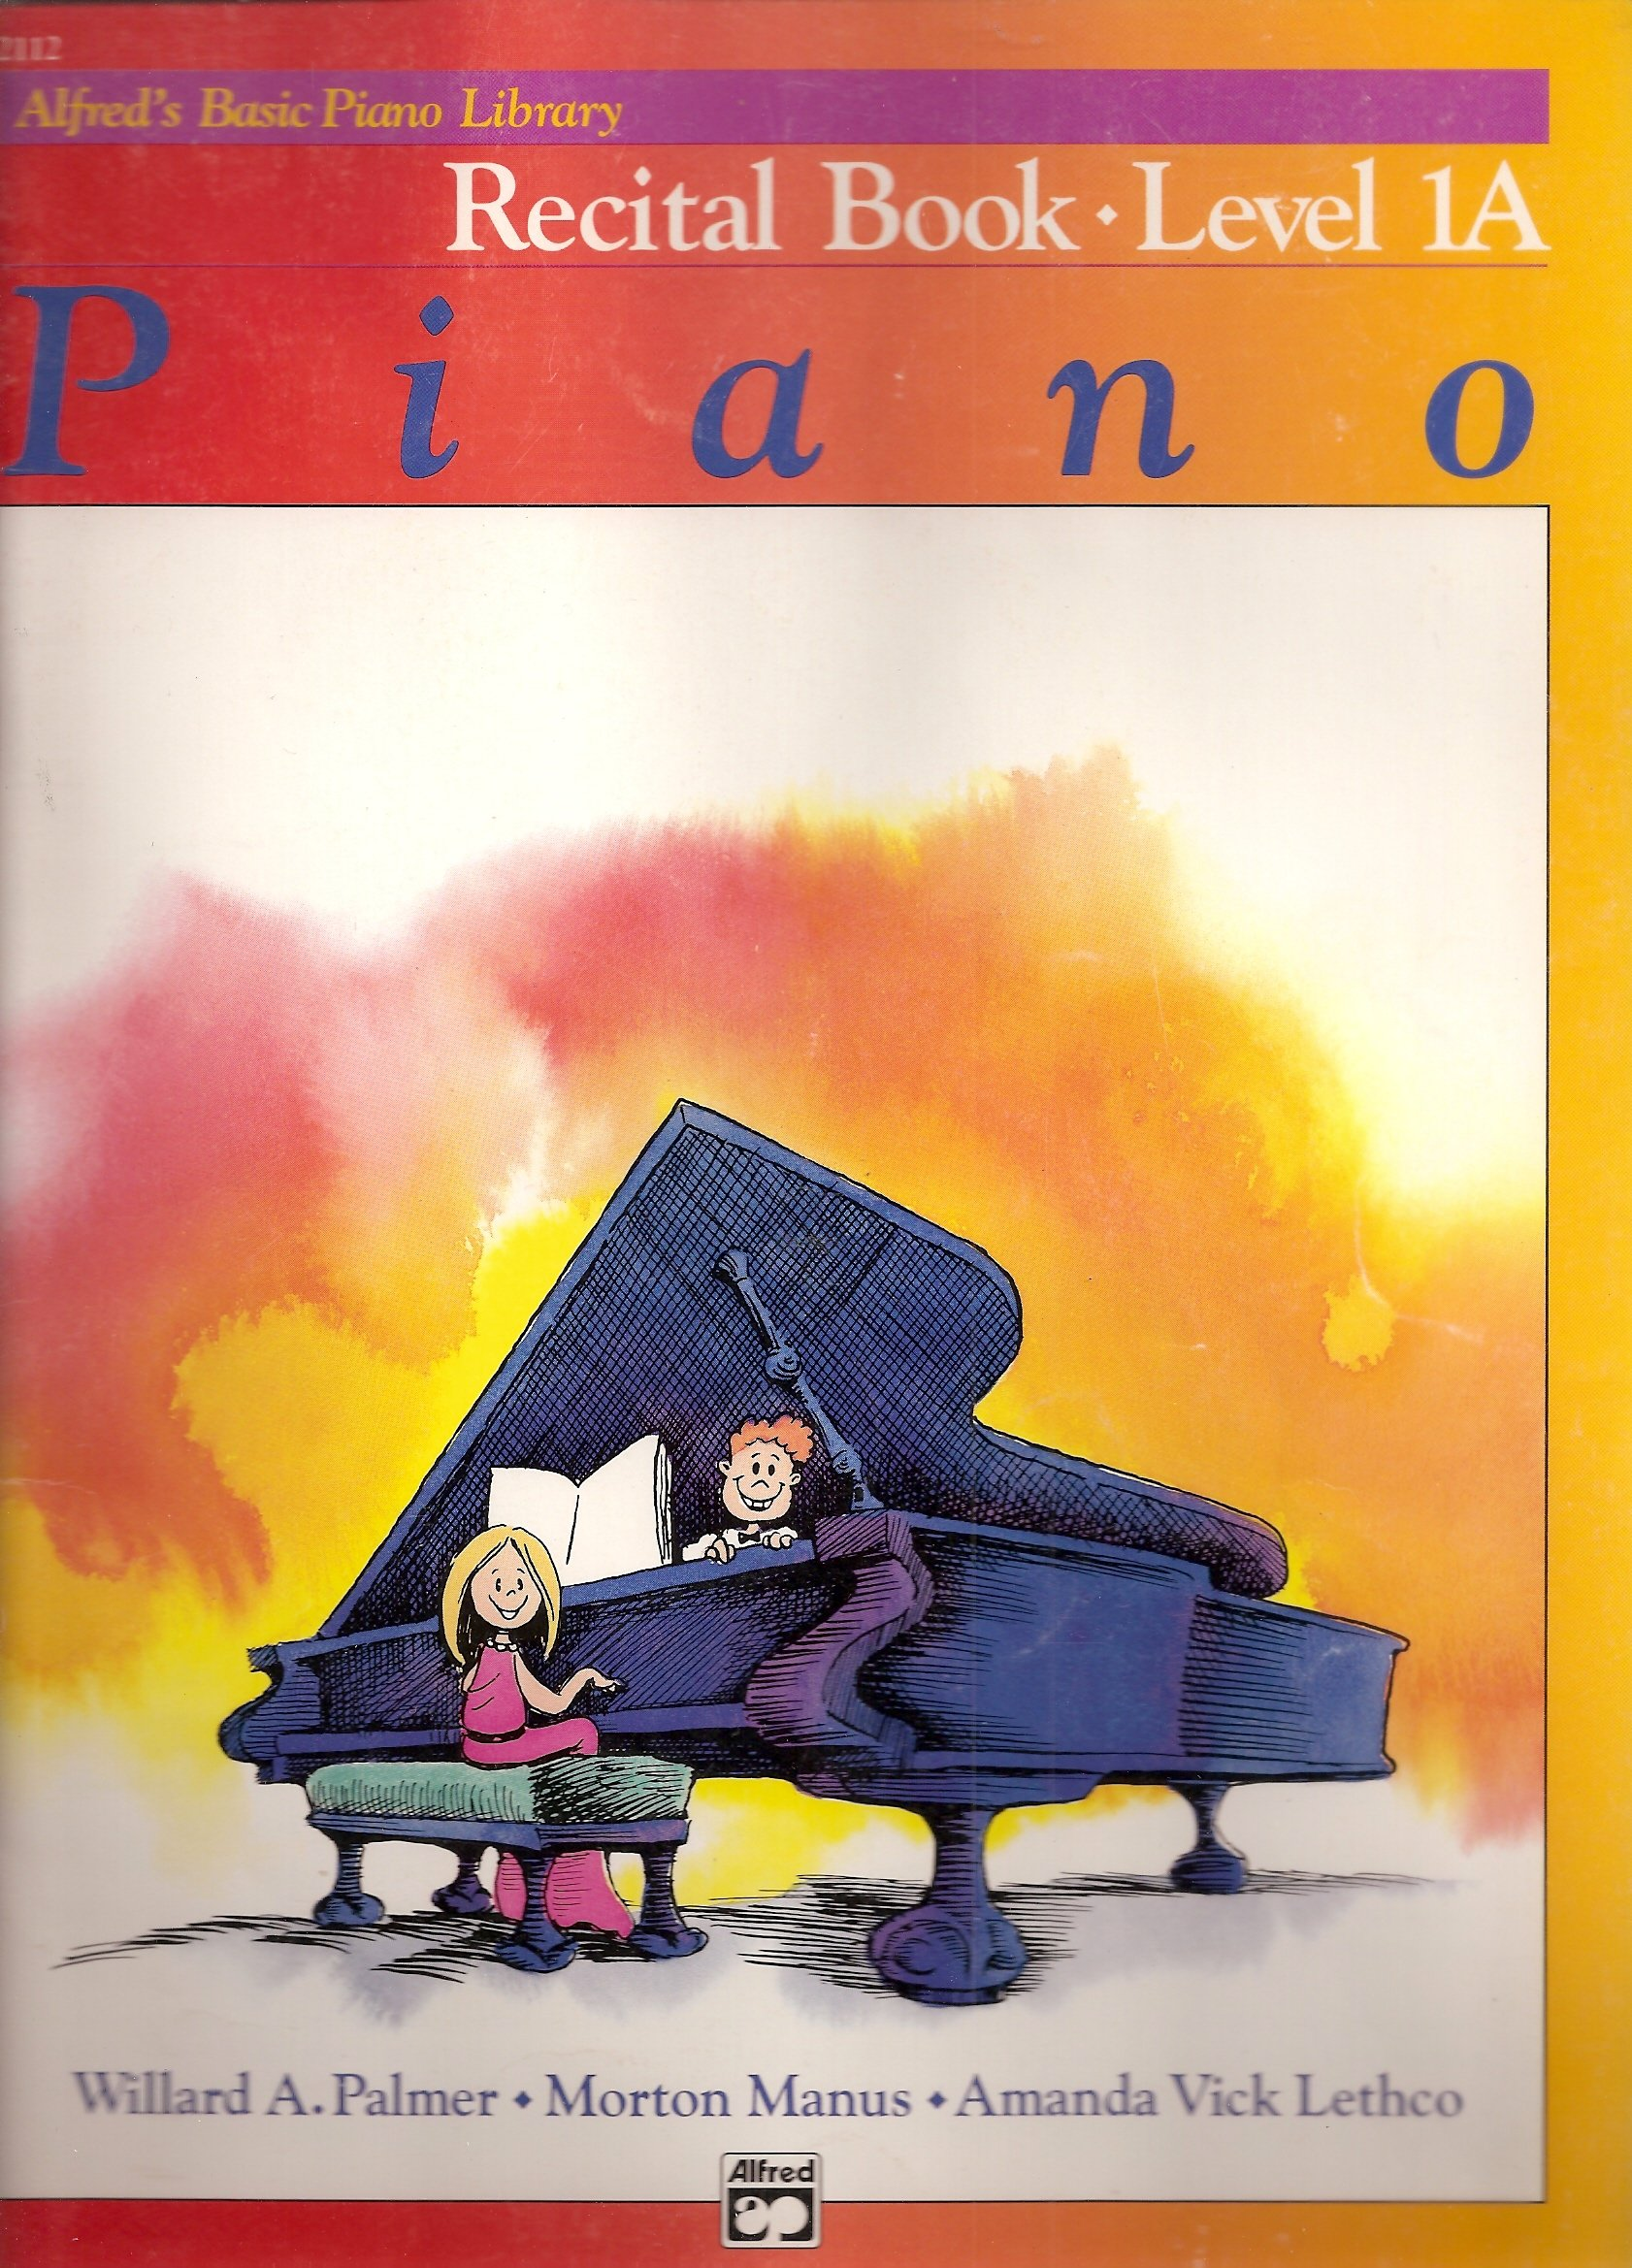 Alfred's Basic Piano Library, Recital Book Level 1A